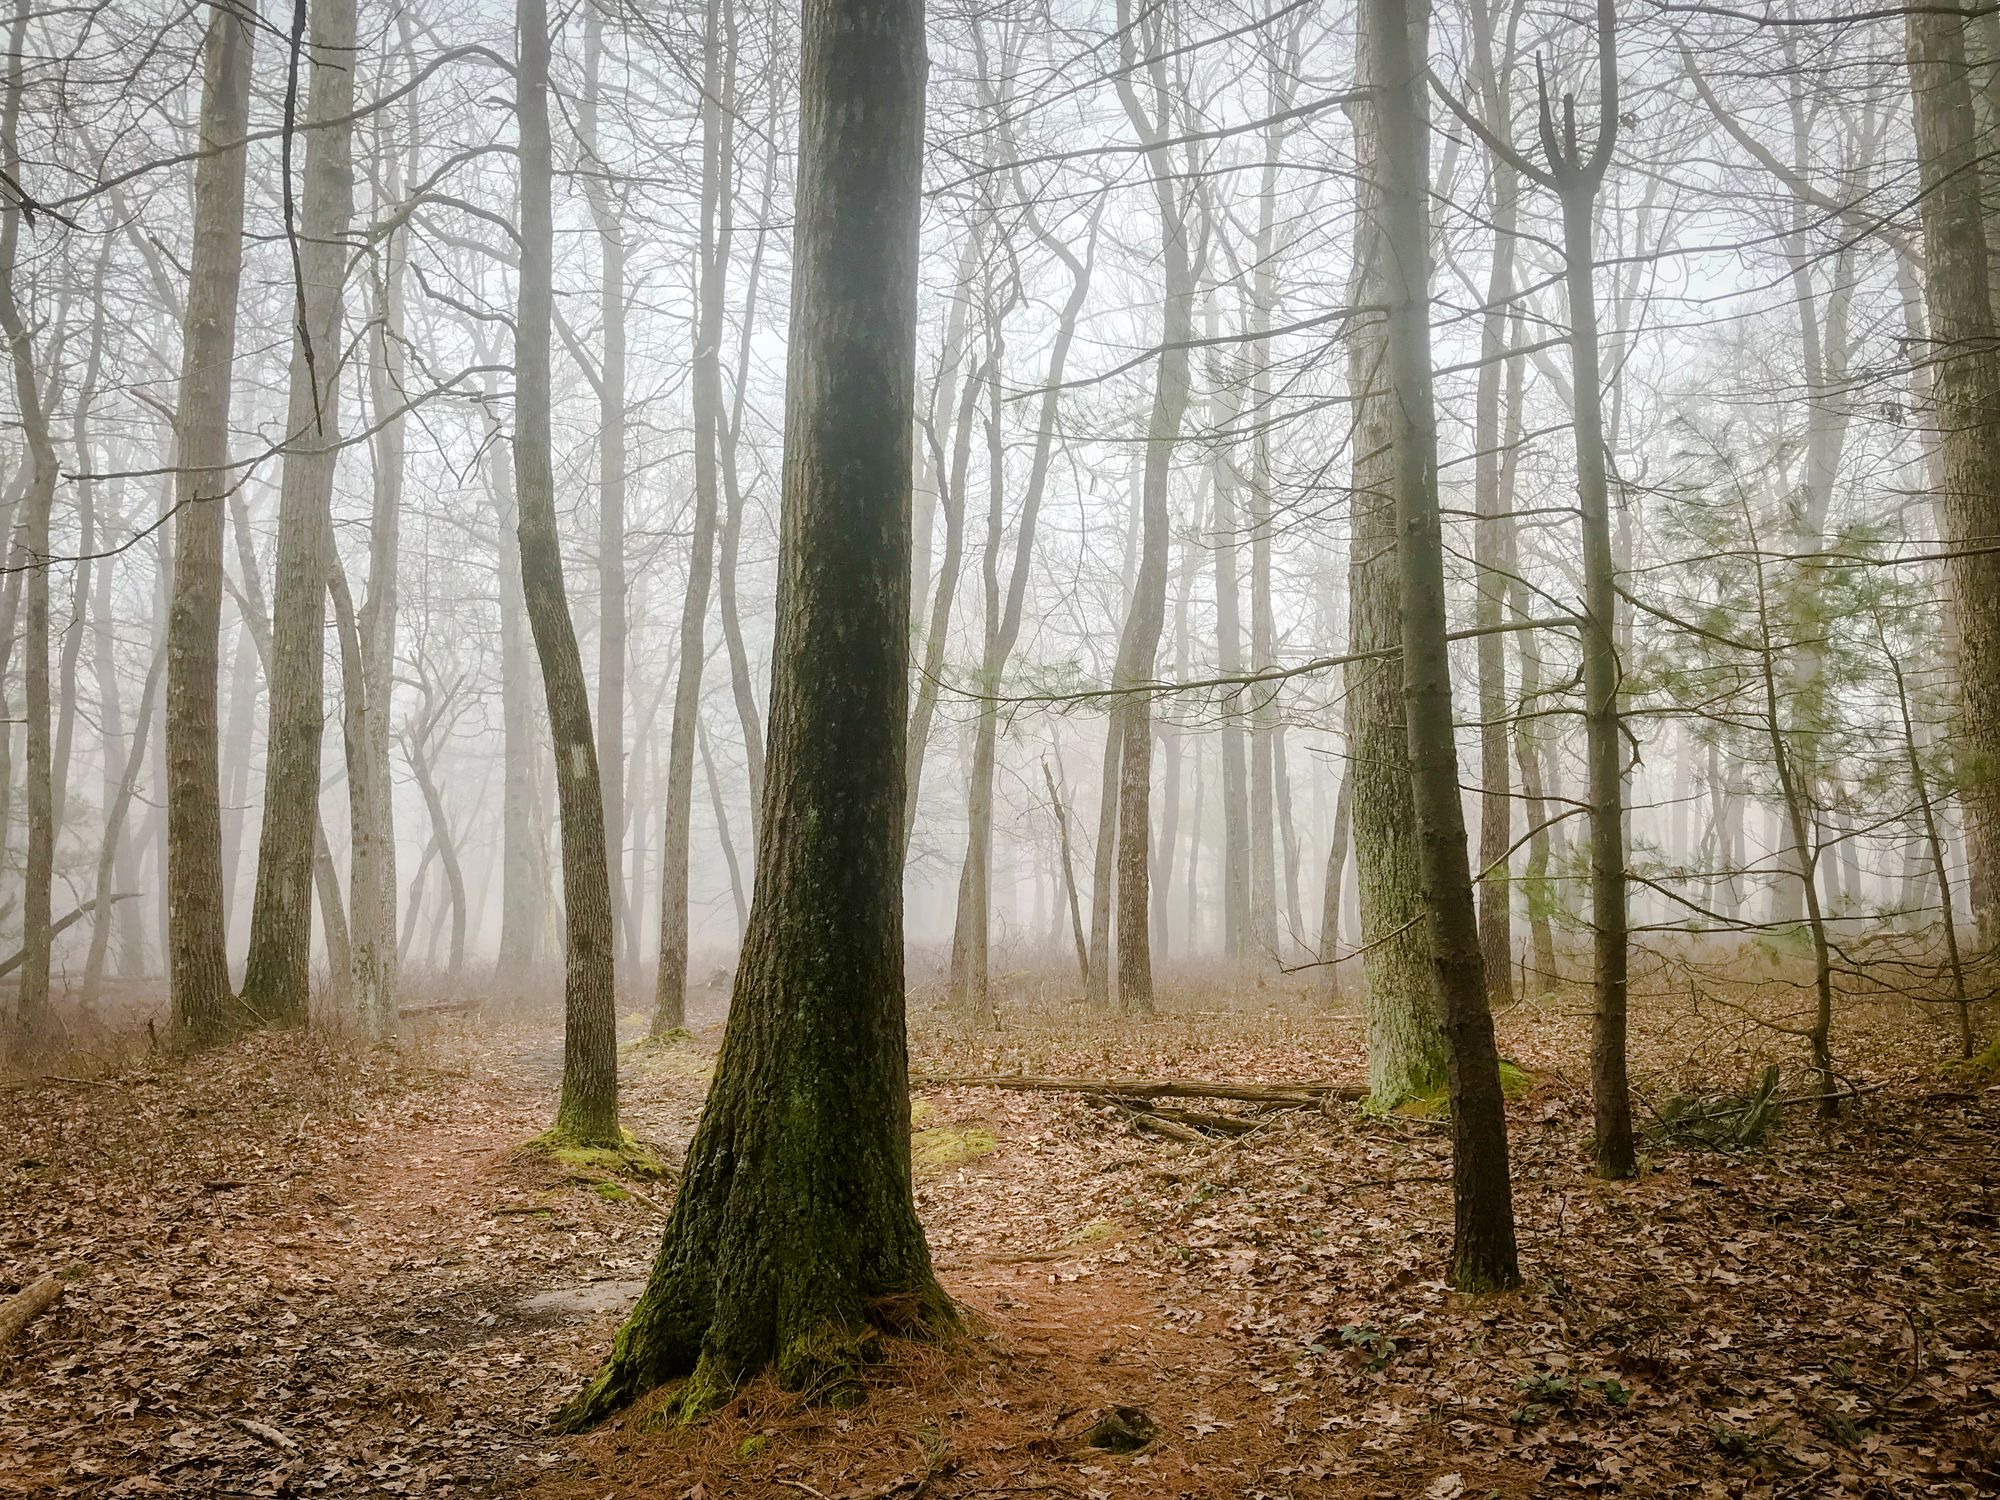 Misty trees along the Appalachian Trail near Biglerville, Pennsylvania